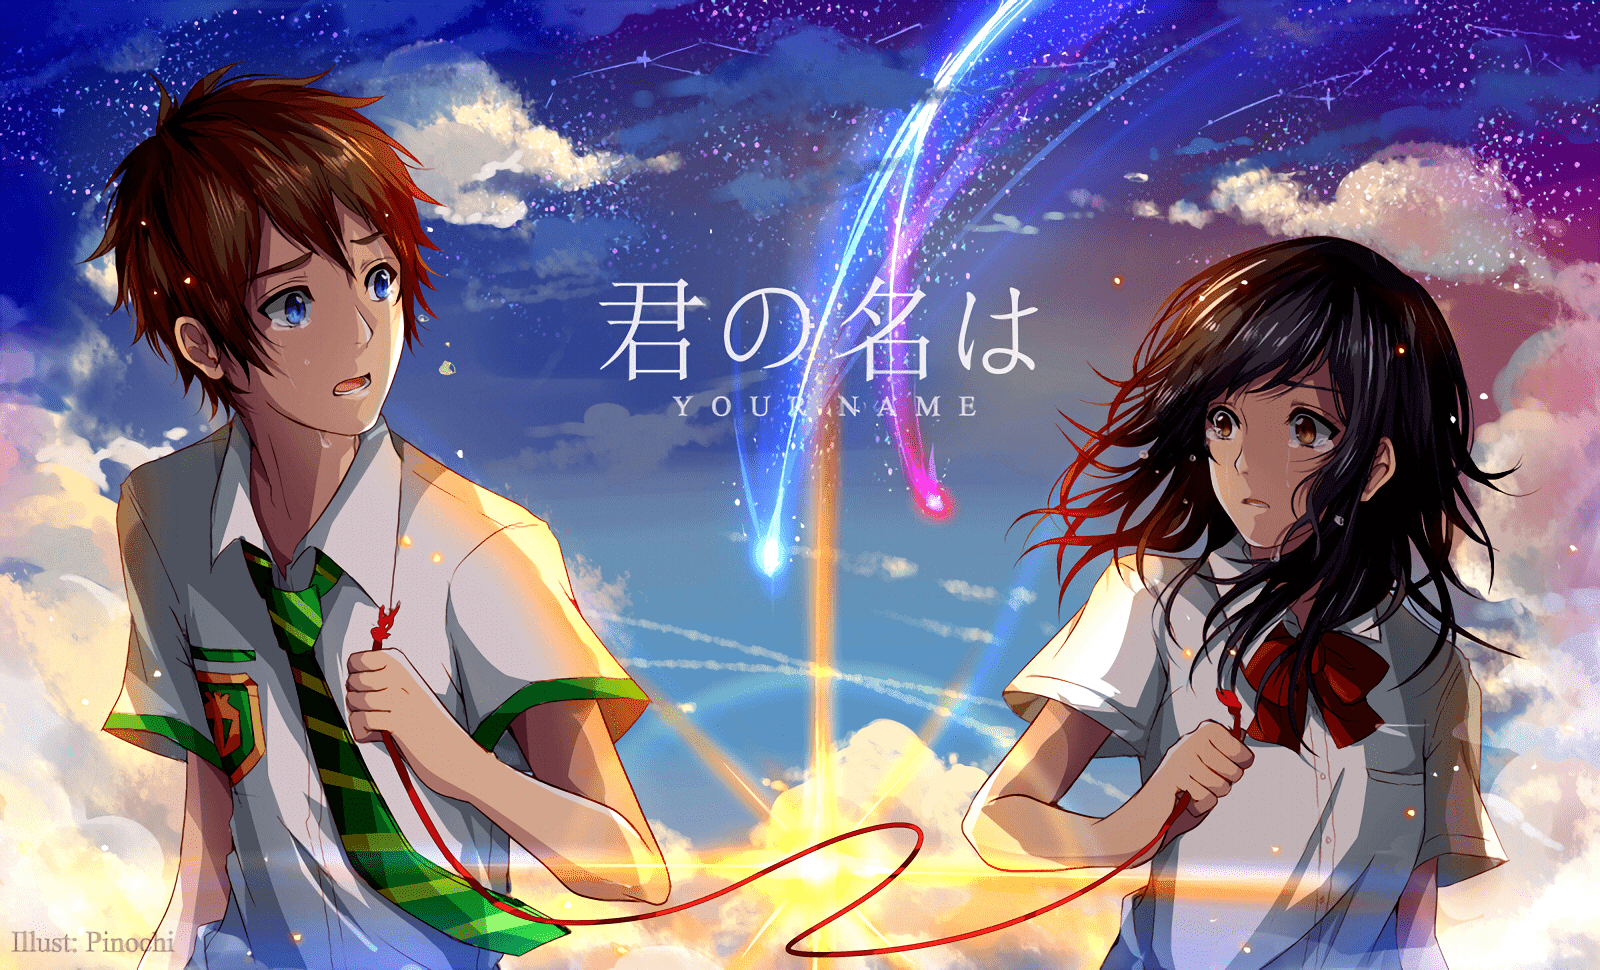 AowVN%2B%252849%2529 - [ Hình Nền ] Anime Your Name. - Kimi no Nawa full HD cực đẹp | Anime Wallpaper